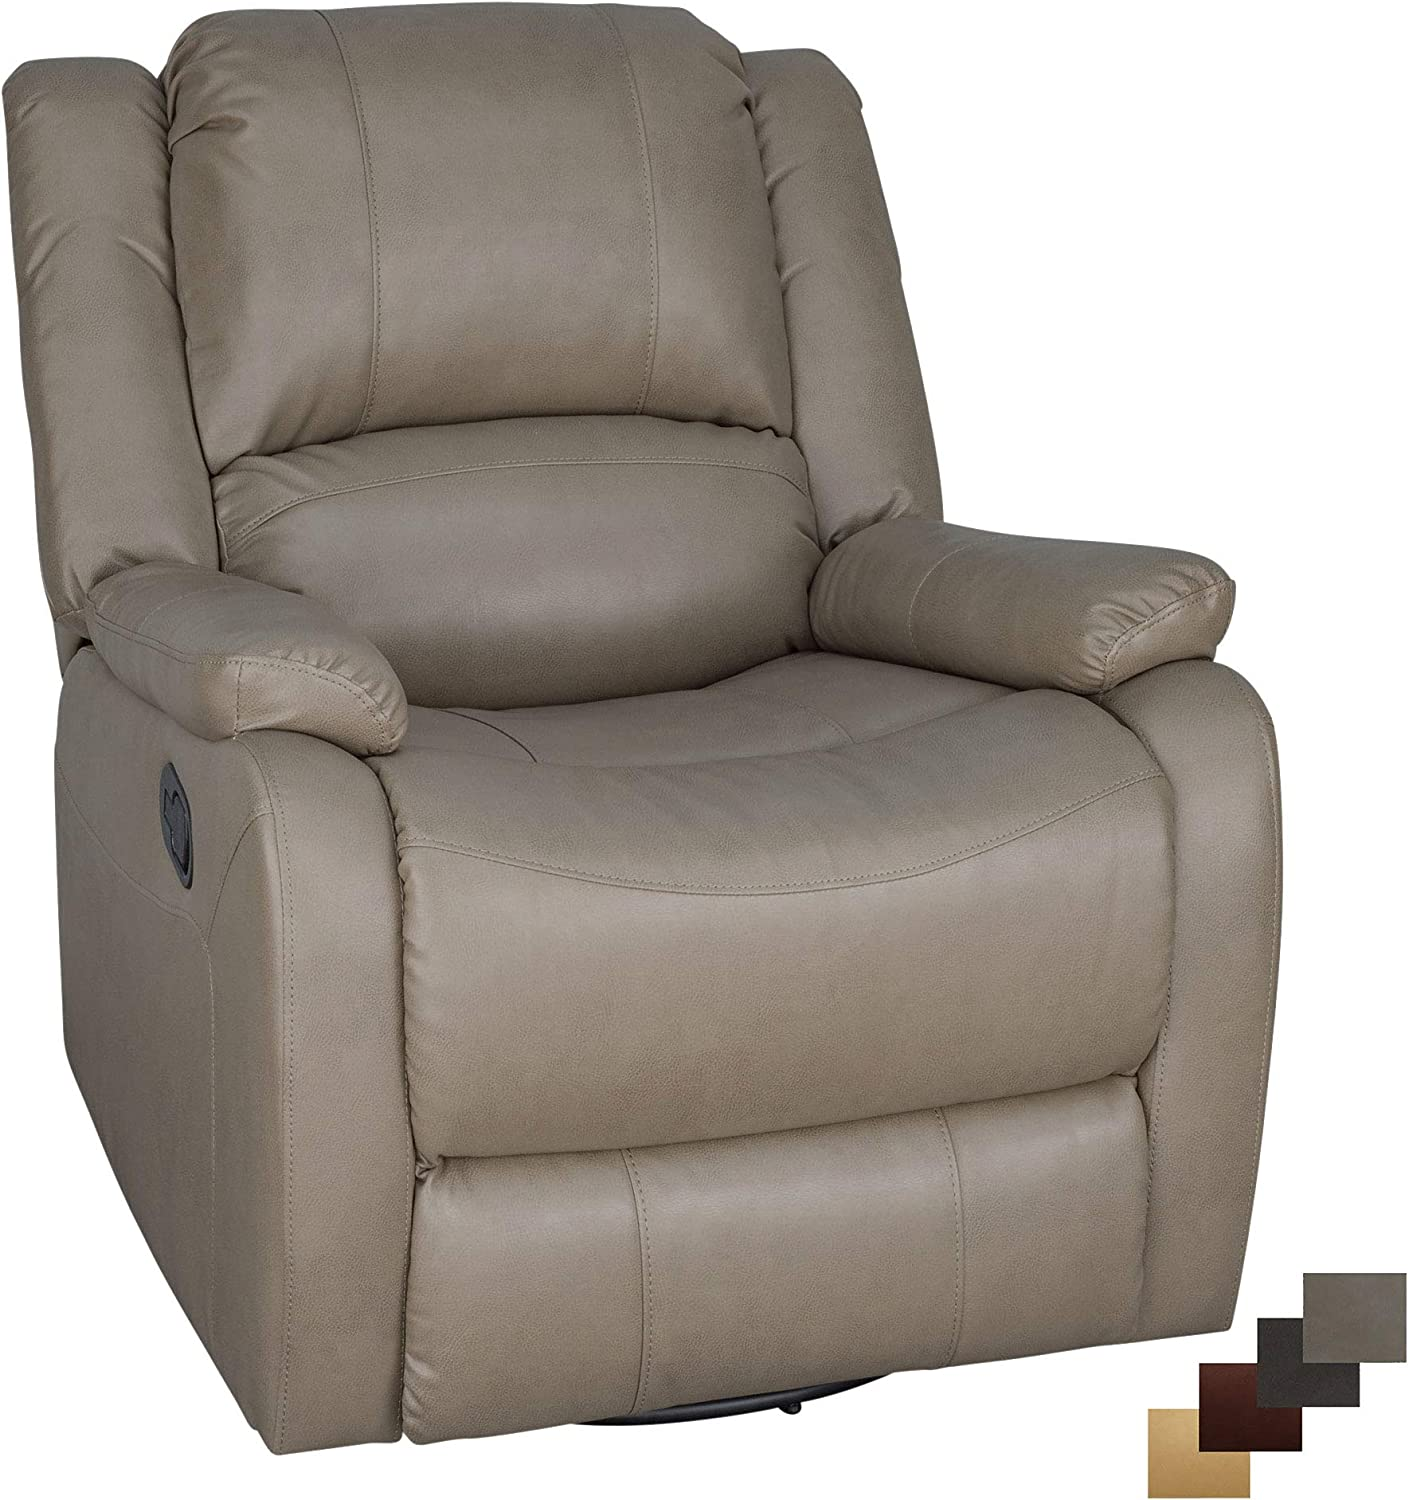 "RecPro Charles Collection | 30"" Swivel Glider RV Recliner 